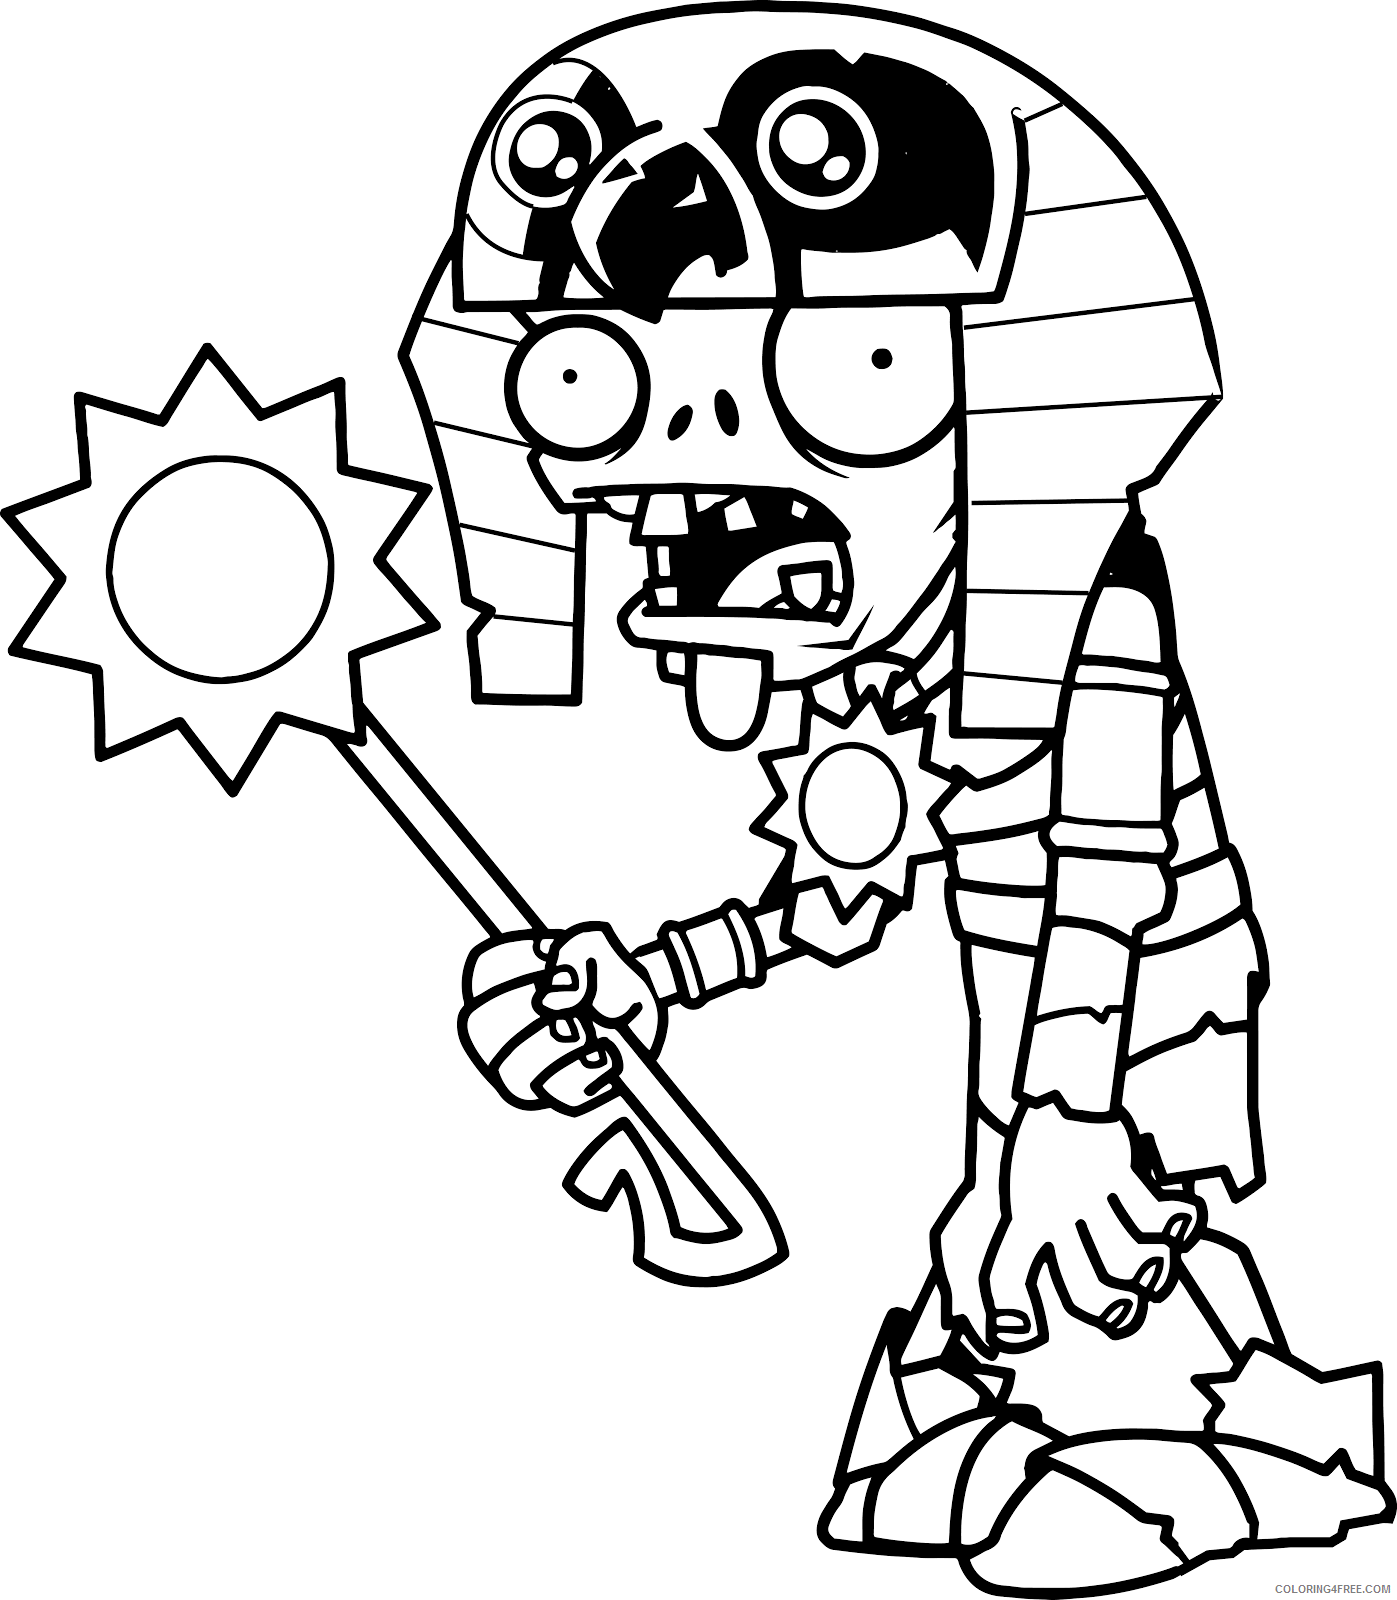 plants vs zombies coloring pages mummy ra zombie Coloring4free